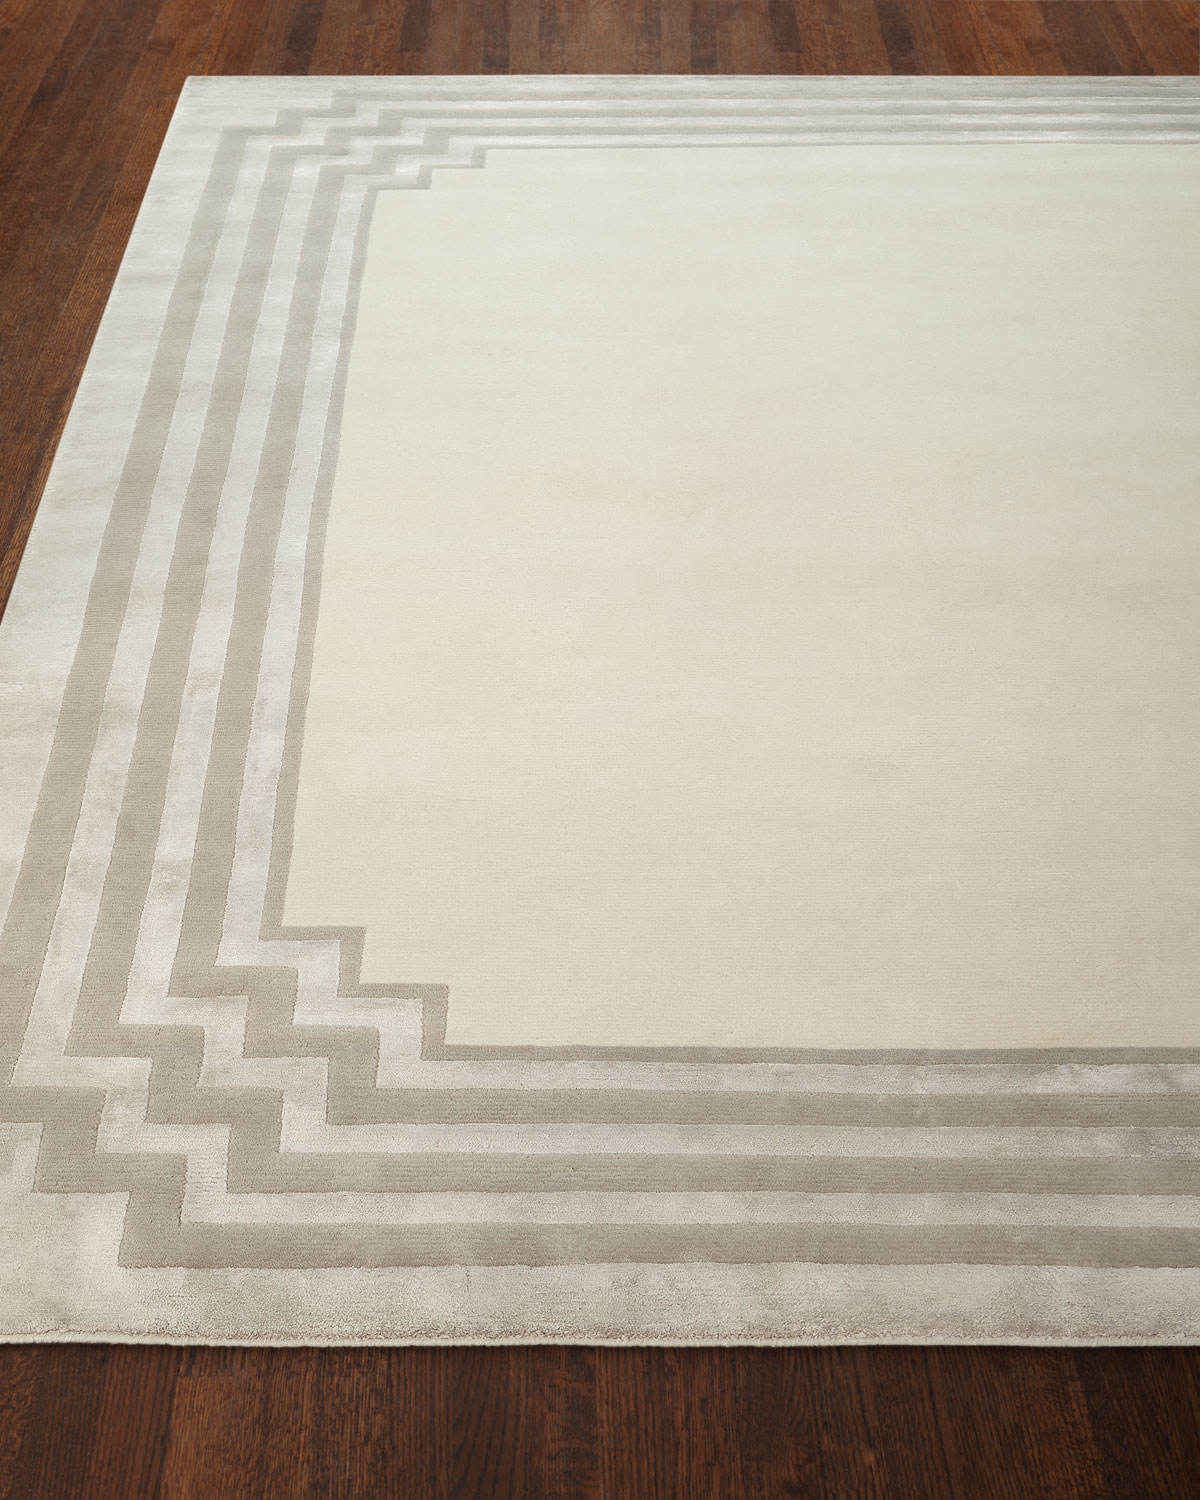 Exquisite Rugs Chattingham Hand-Knotted Rug, 10' x 14'